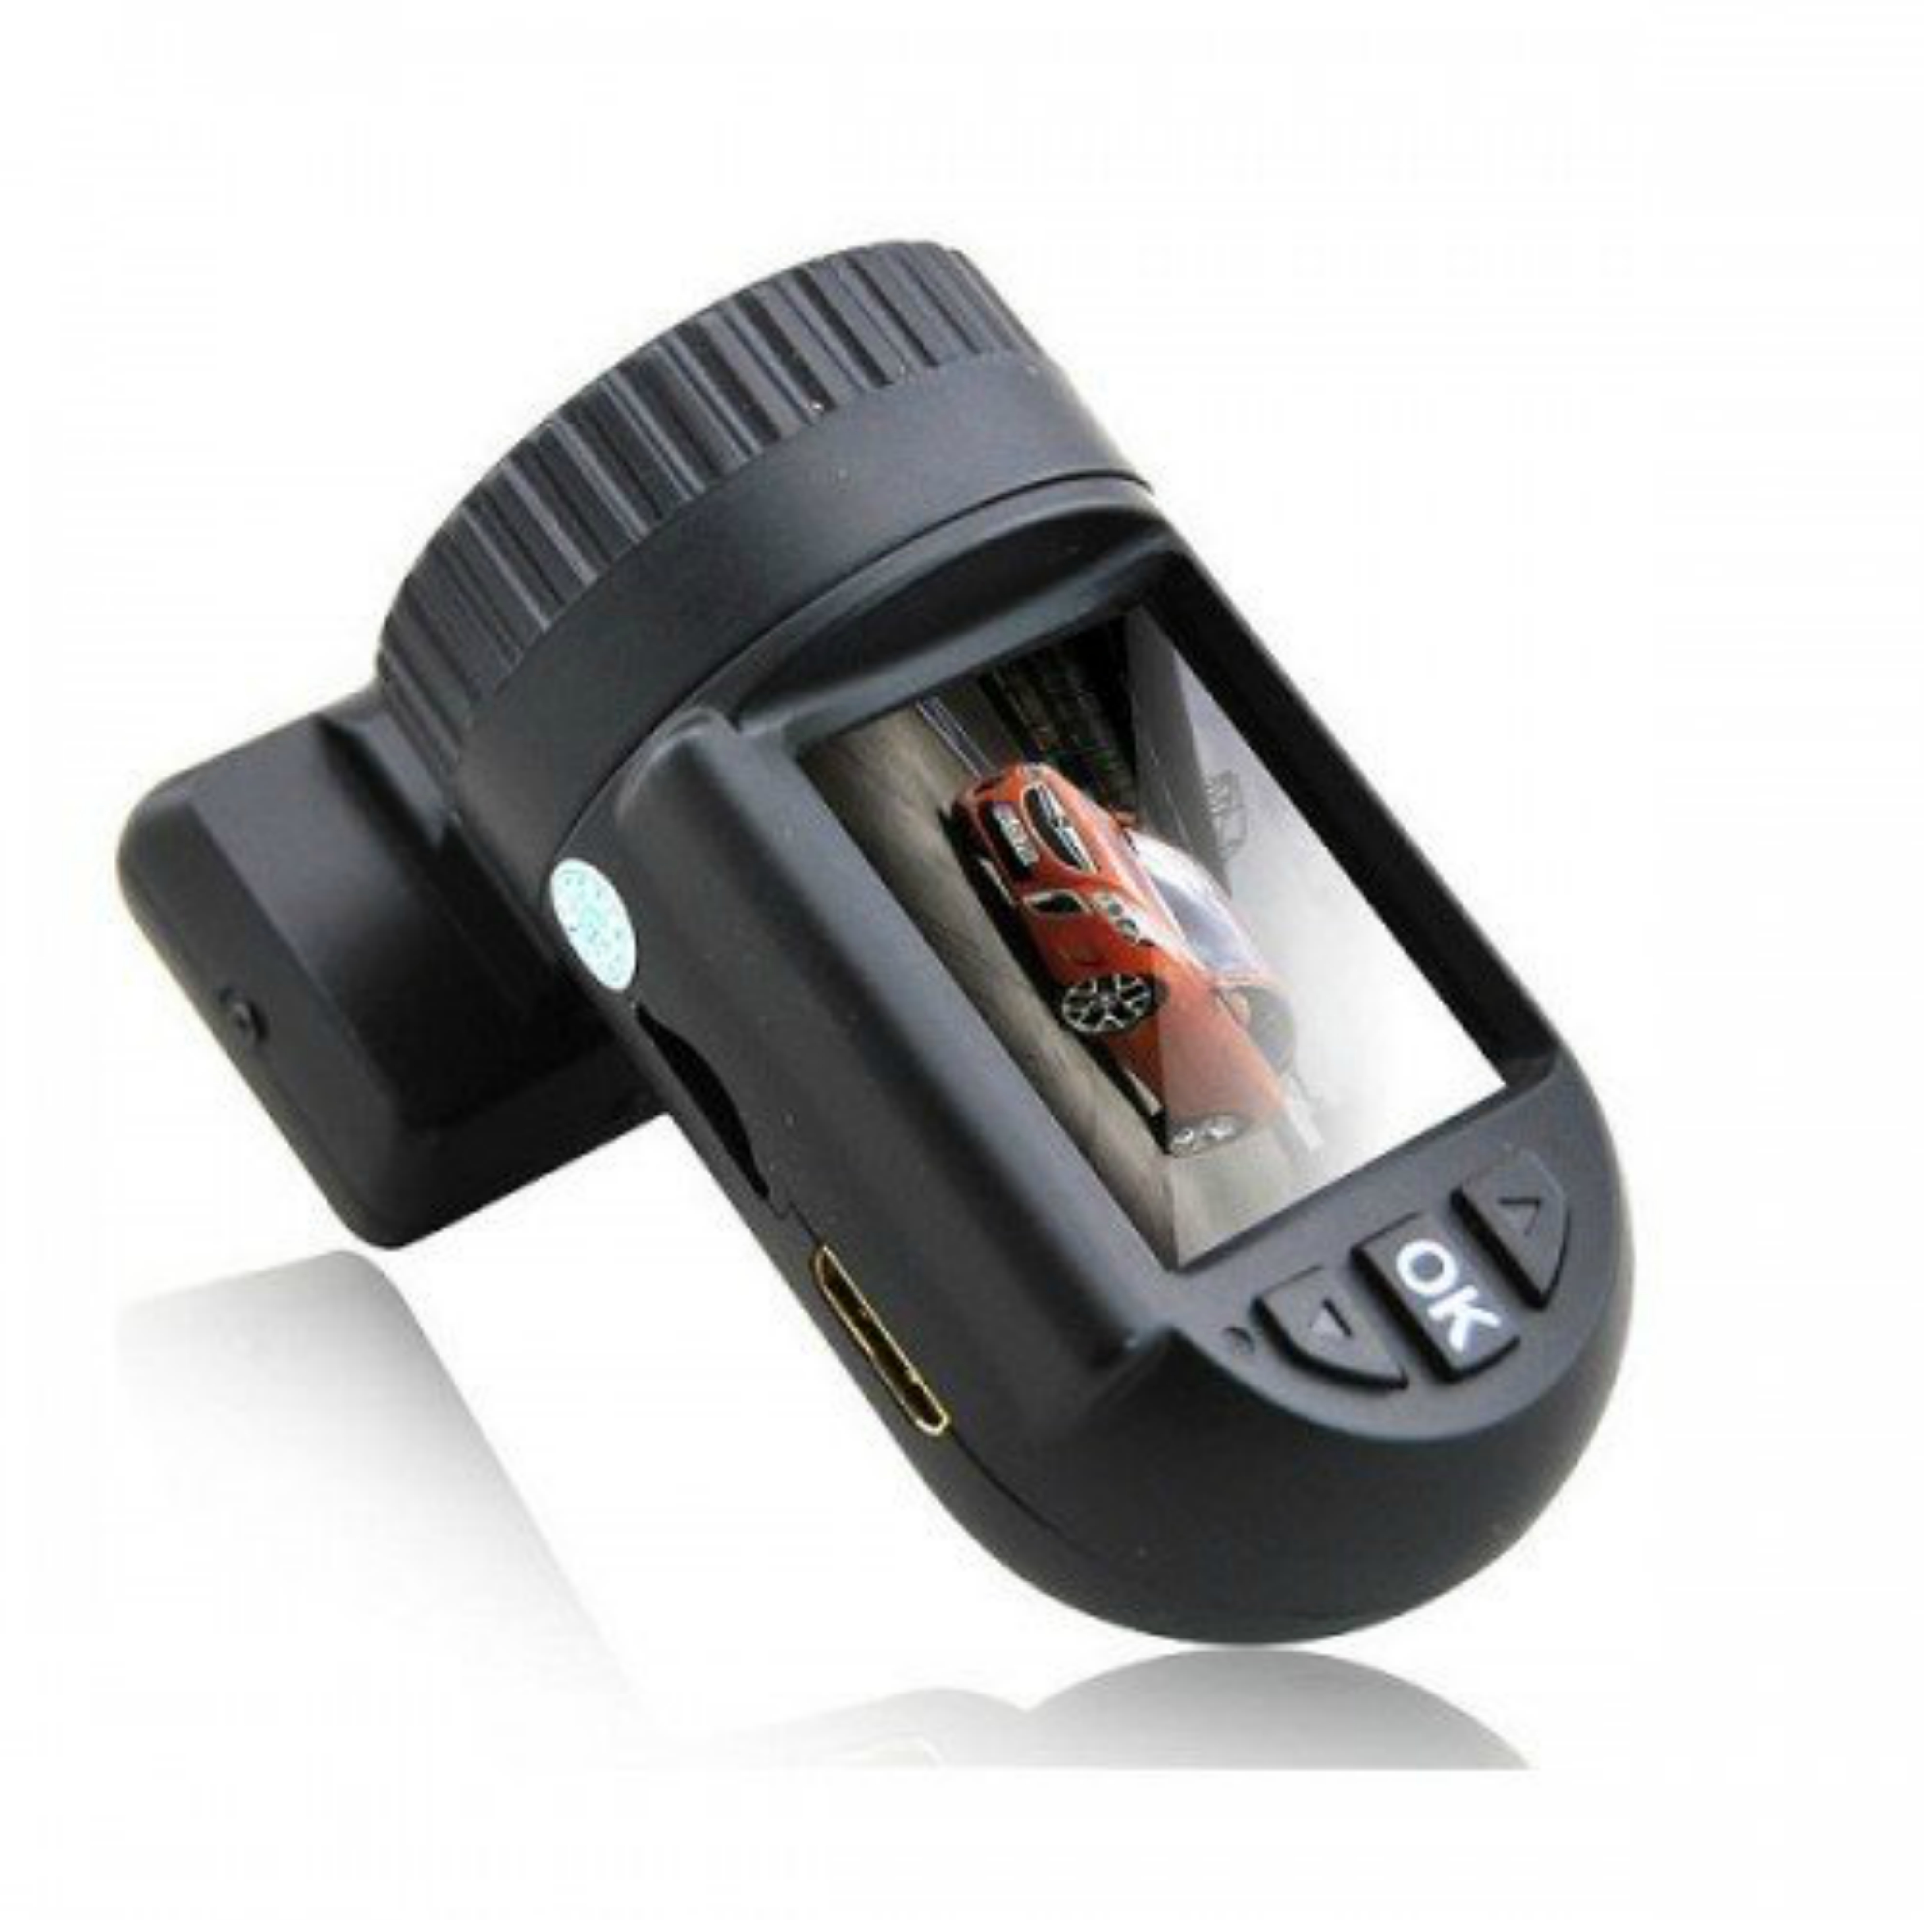 Silent Witness SW010 LCD Full HD 1080p Car Dashboard Camera|GPS|Video Recorder|